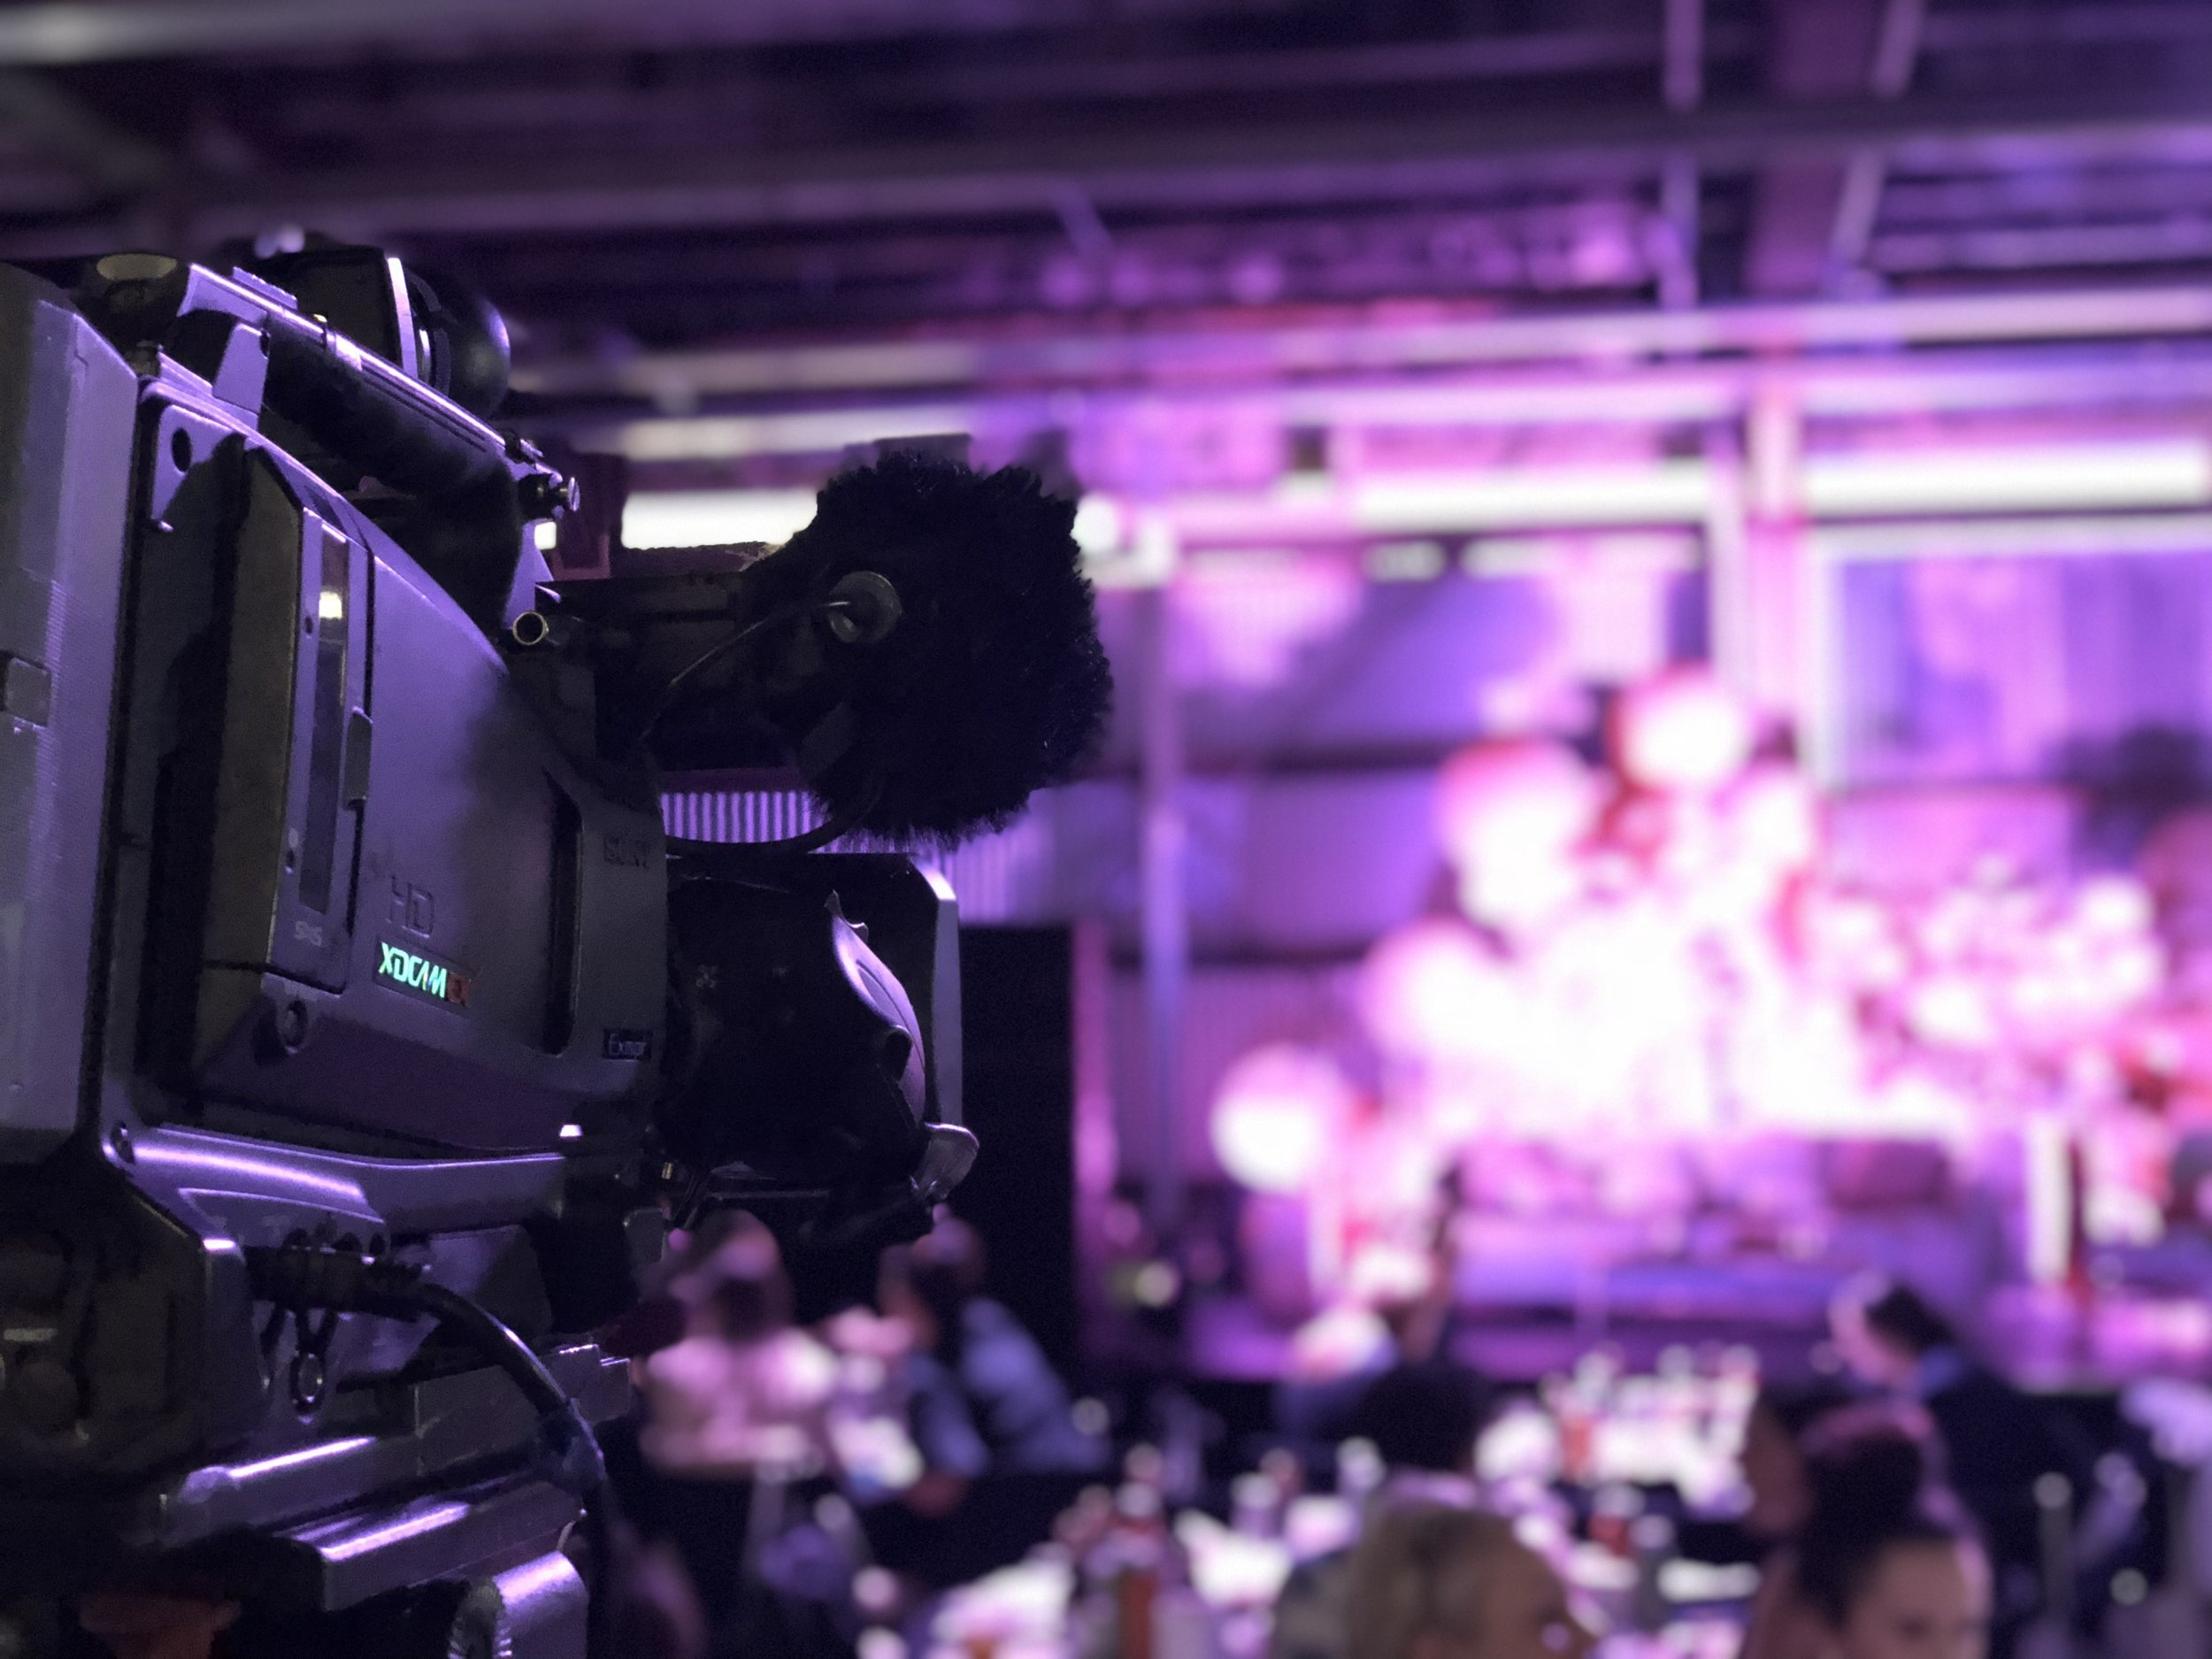 Live Cameras & Content - Video and graphics provide a powerful focal point to integrate all aspects of a live event. Artist and corporate IMAG or live event content creation, our expertise and road-tested systems produce a high quality medium to present your vision.